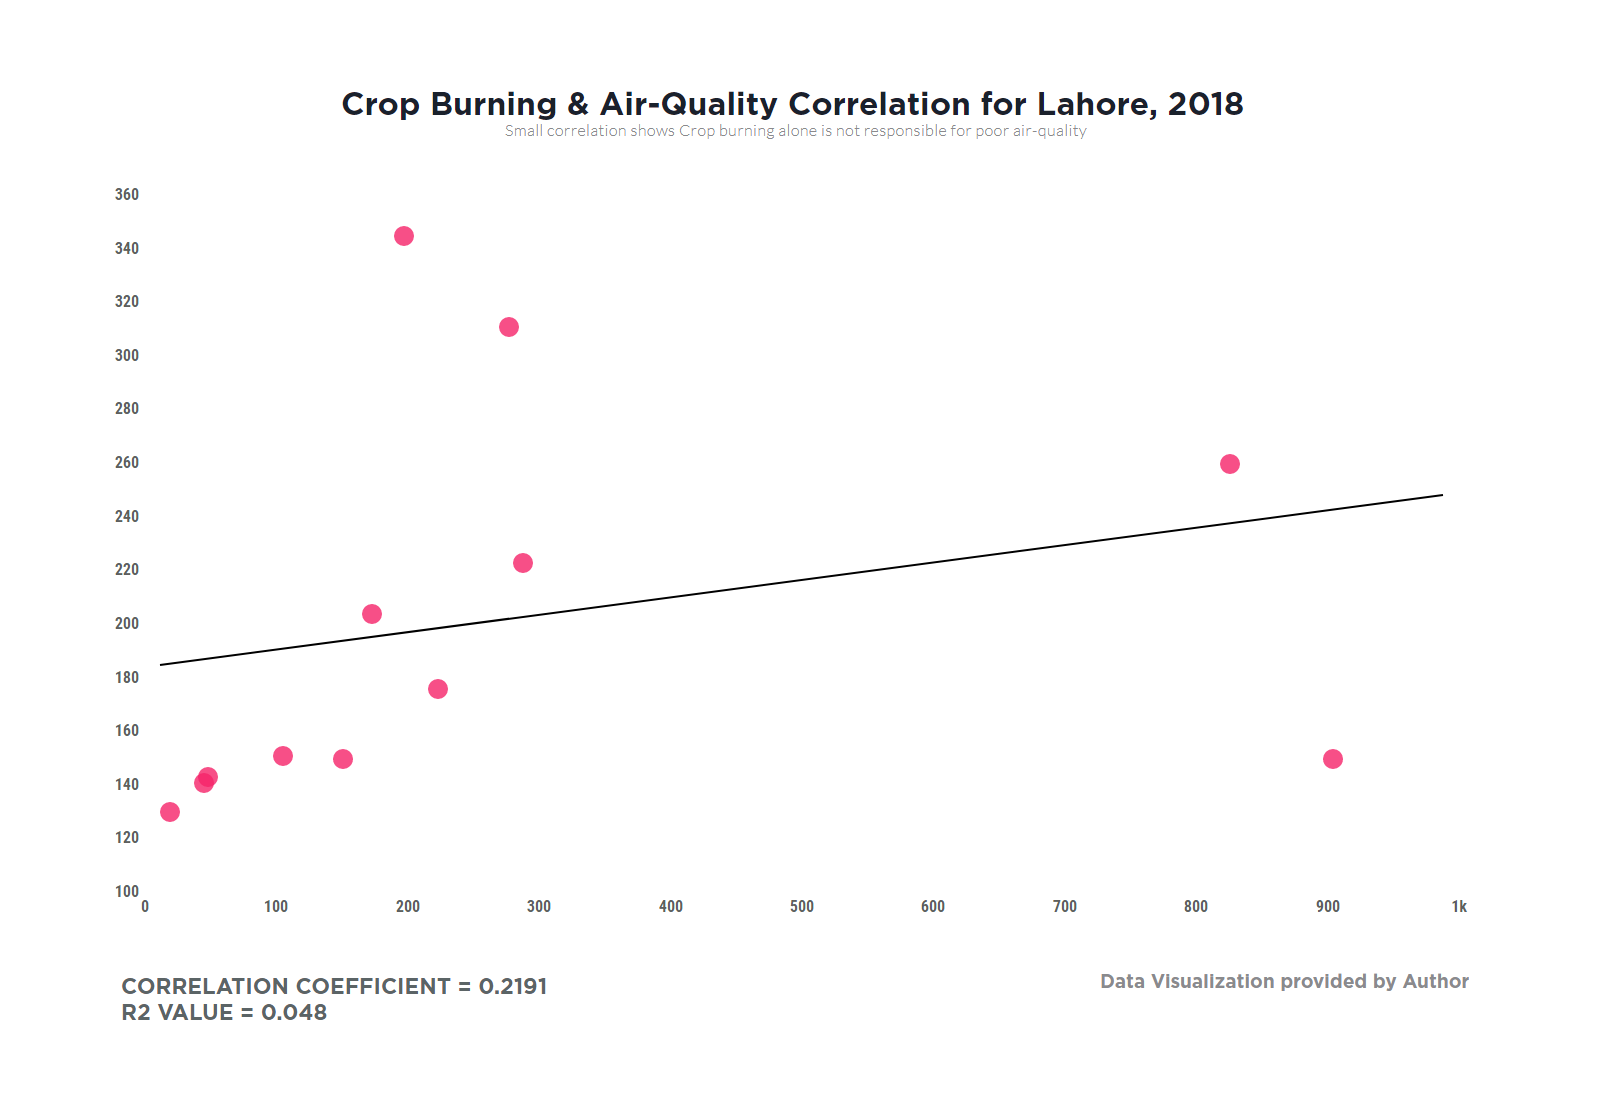 Crop burning and air quality correlation for Lahore in 2018.